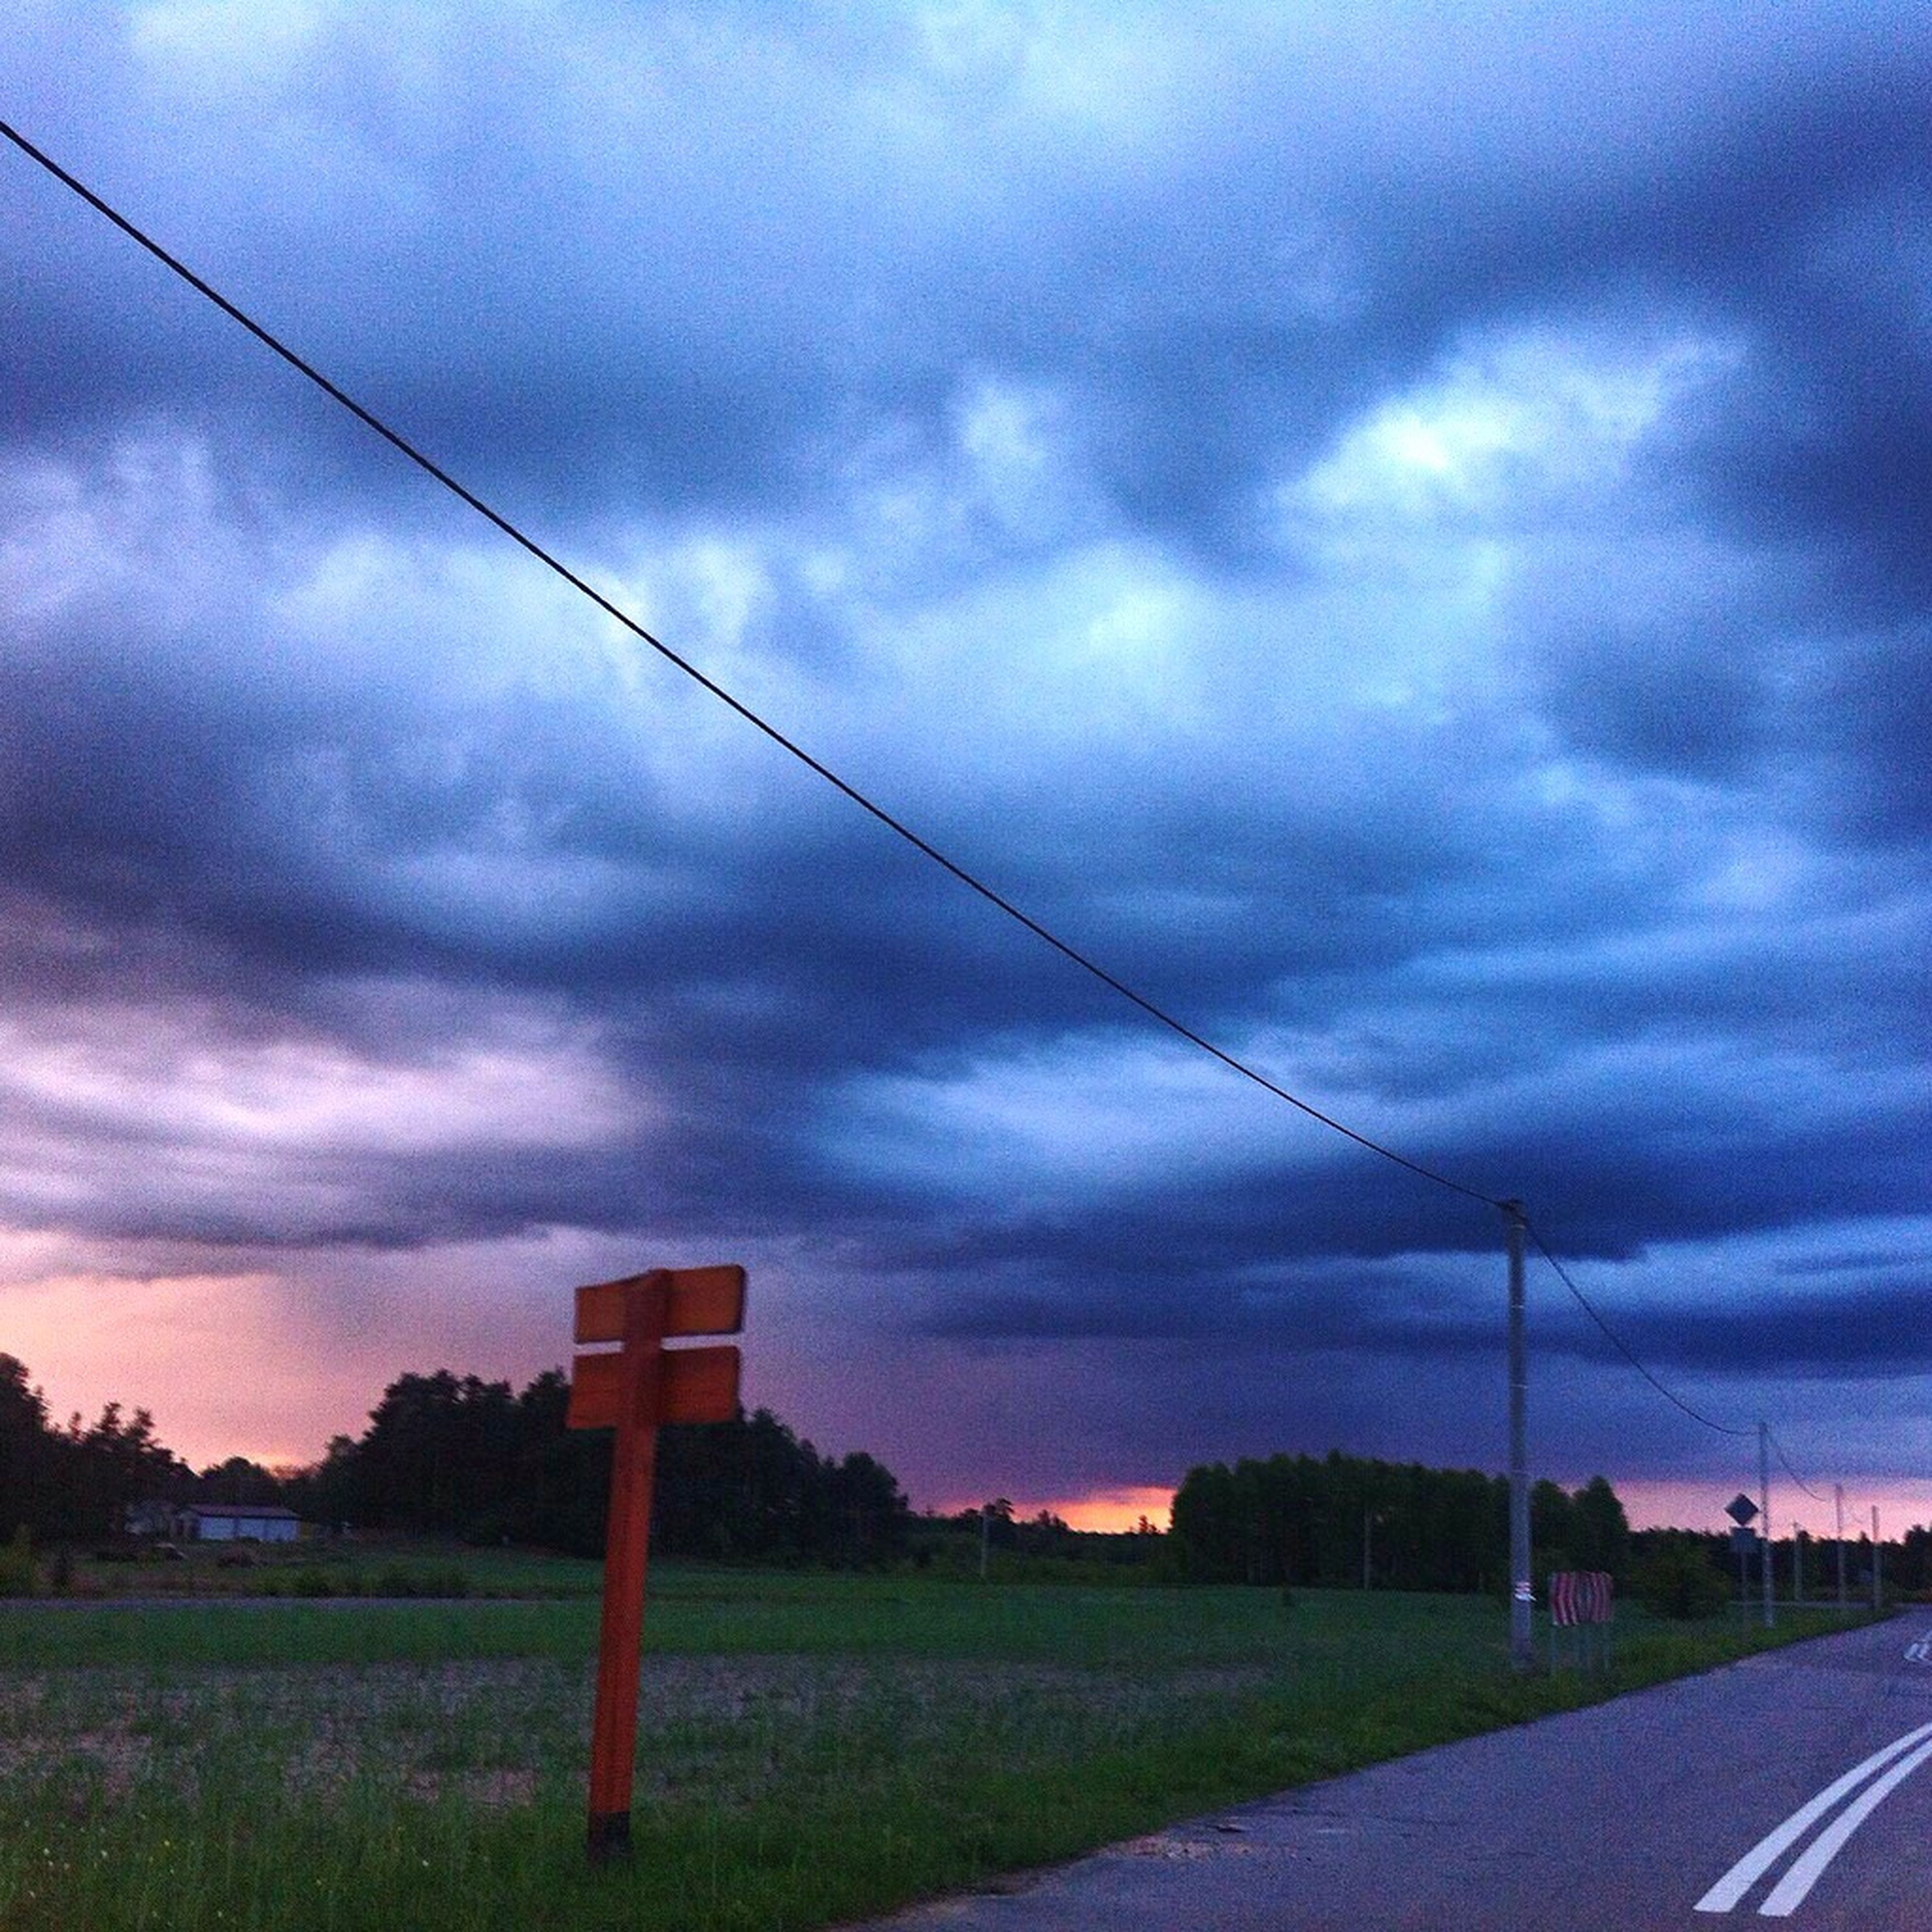 sky, cloud - sky, cloudy, landscape, field, electricity pylon, cloud, road, power line, tranquil scene, tranquility, overcast, rural scene, nature, scenics, the way forward, weather, dramatic sky, connection, electricity